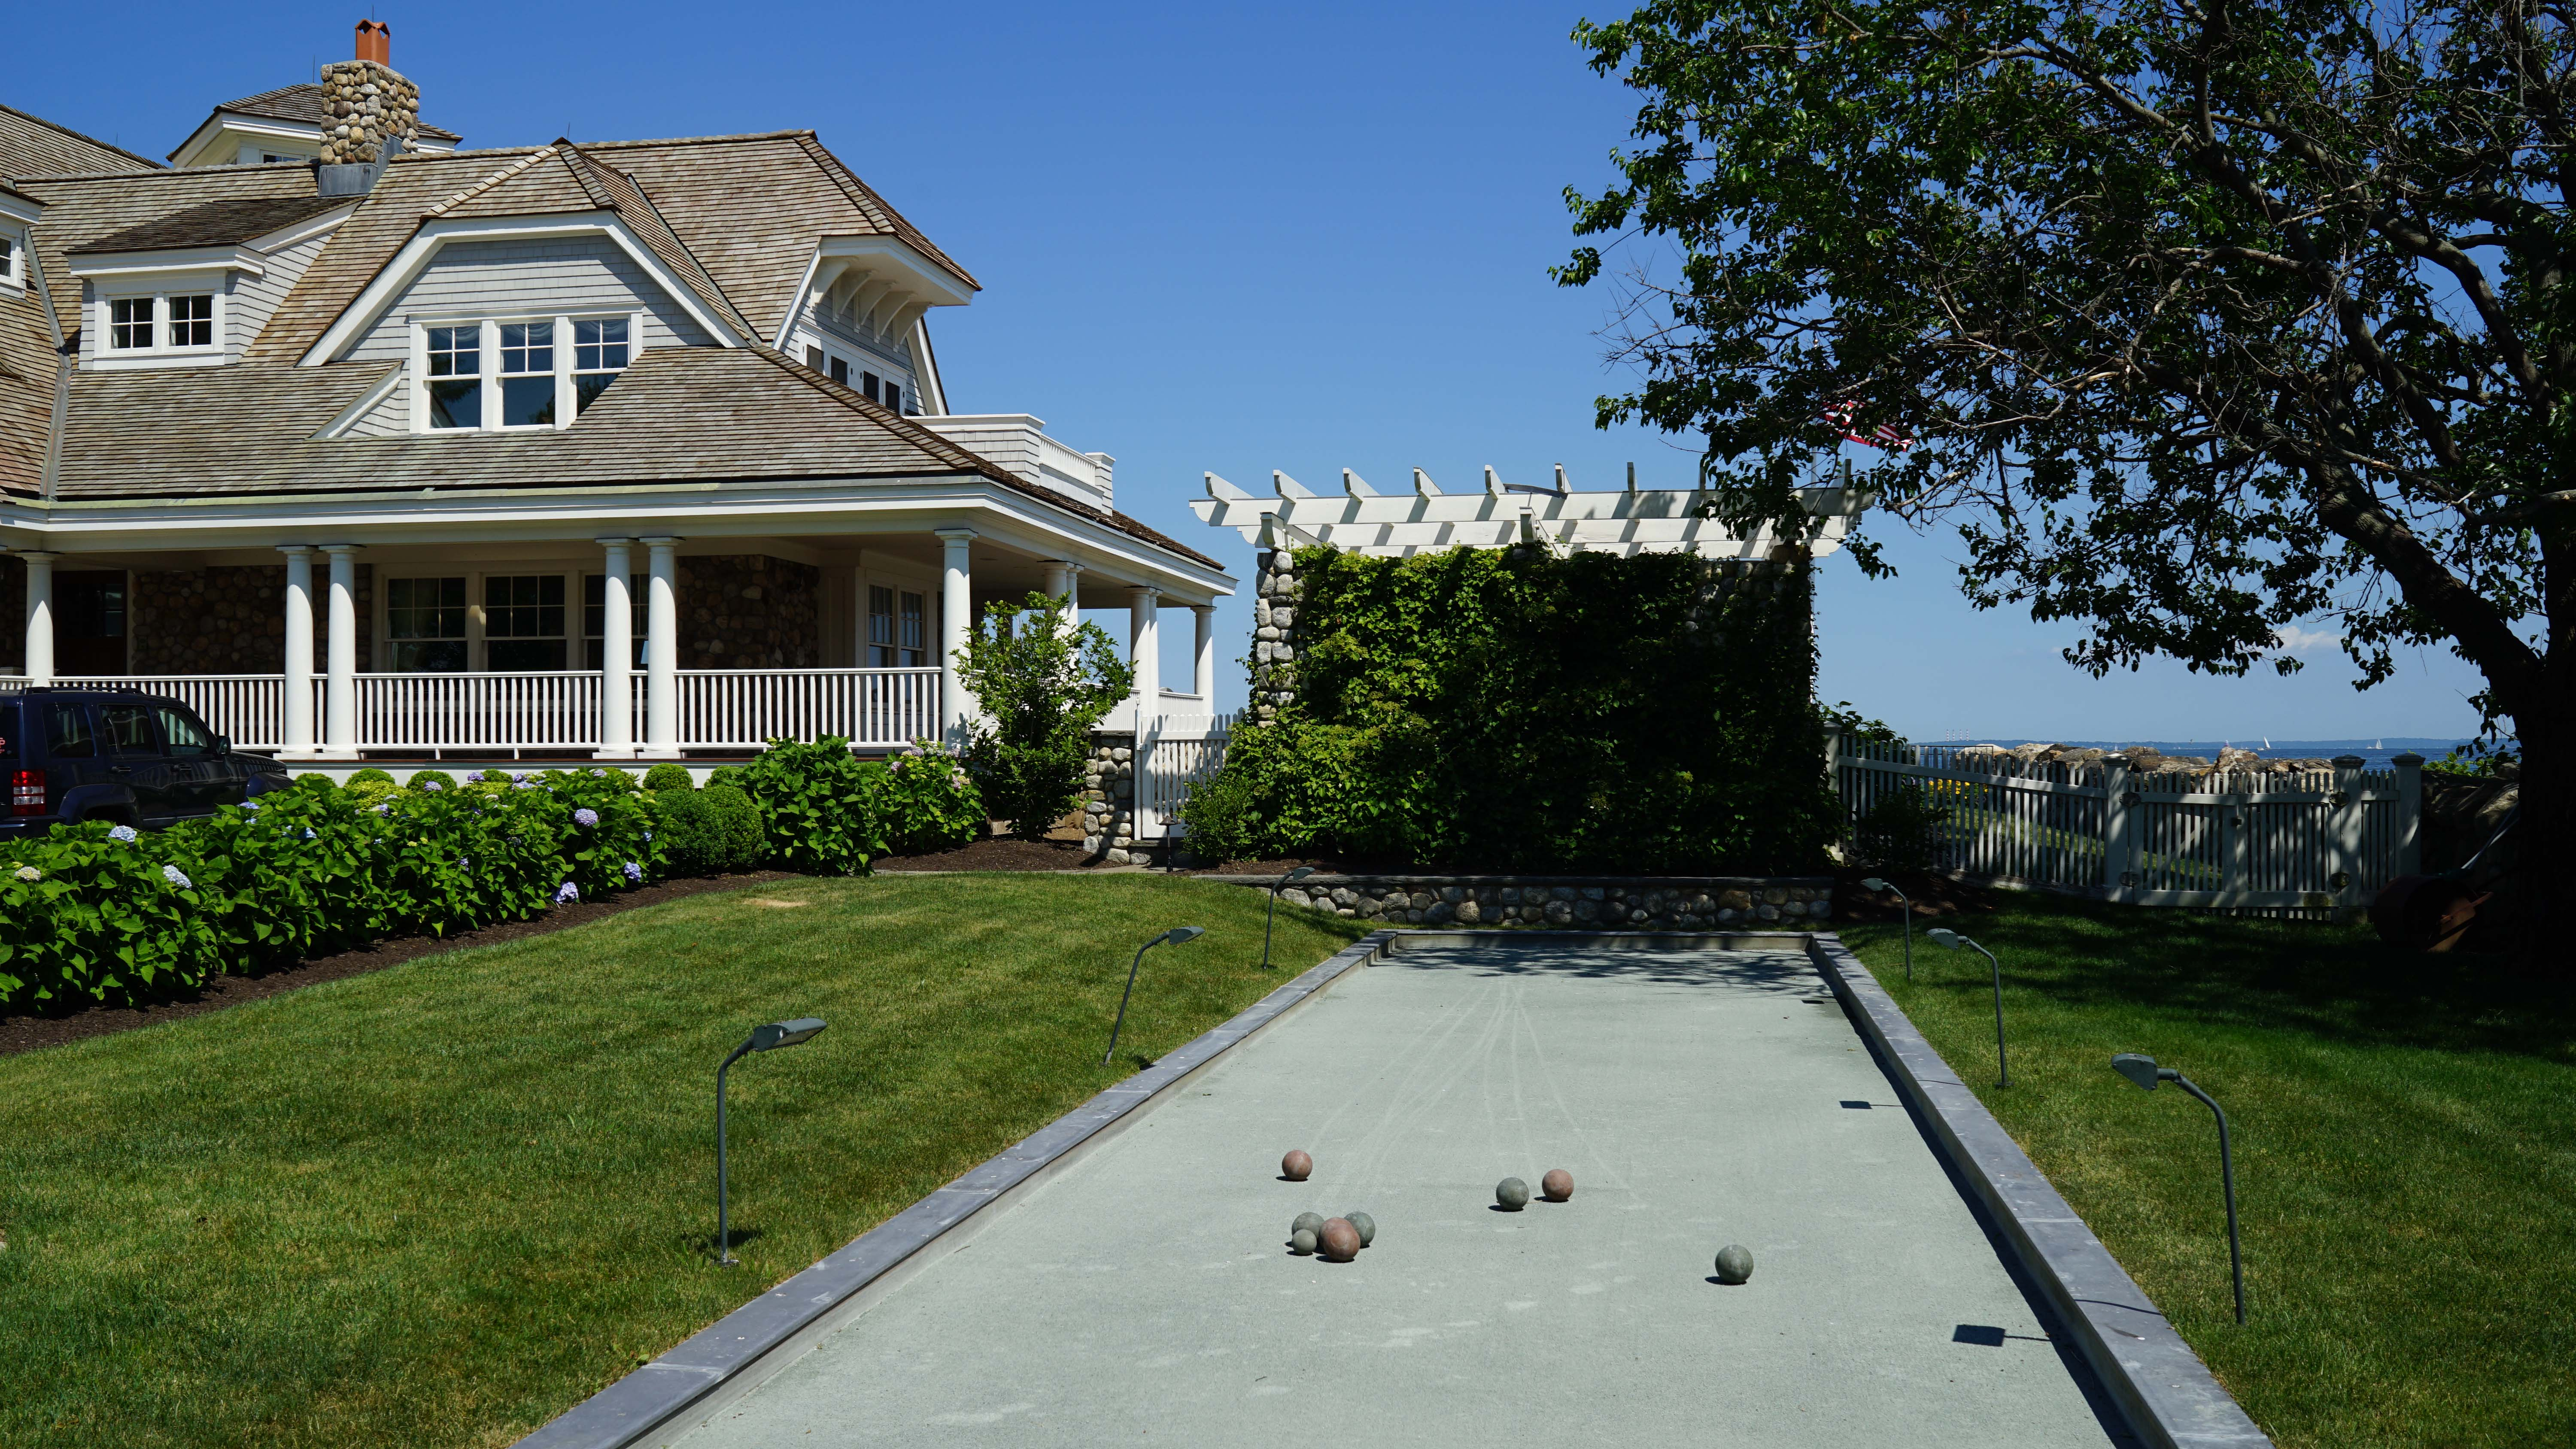 Bocce ball court Tods point od greenwich